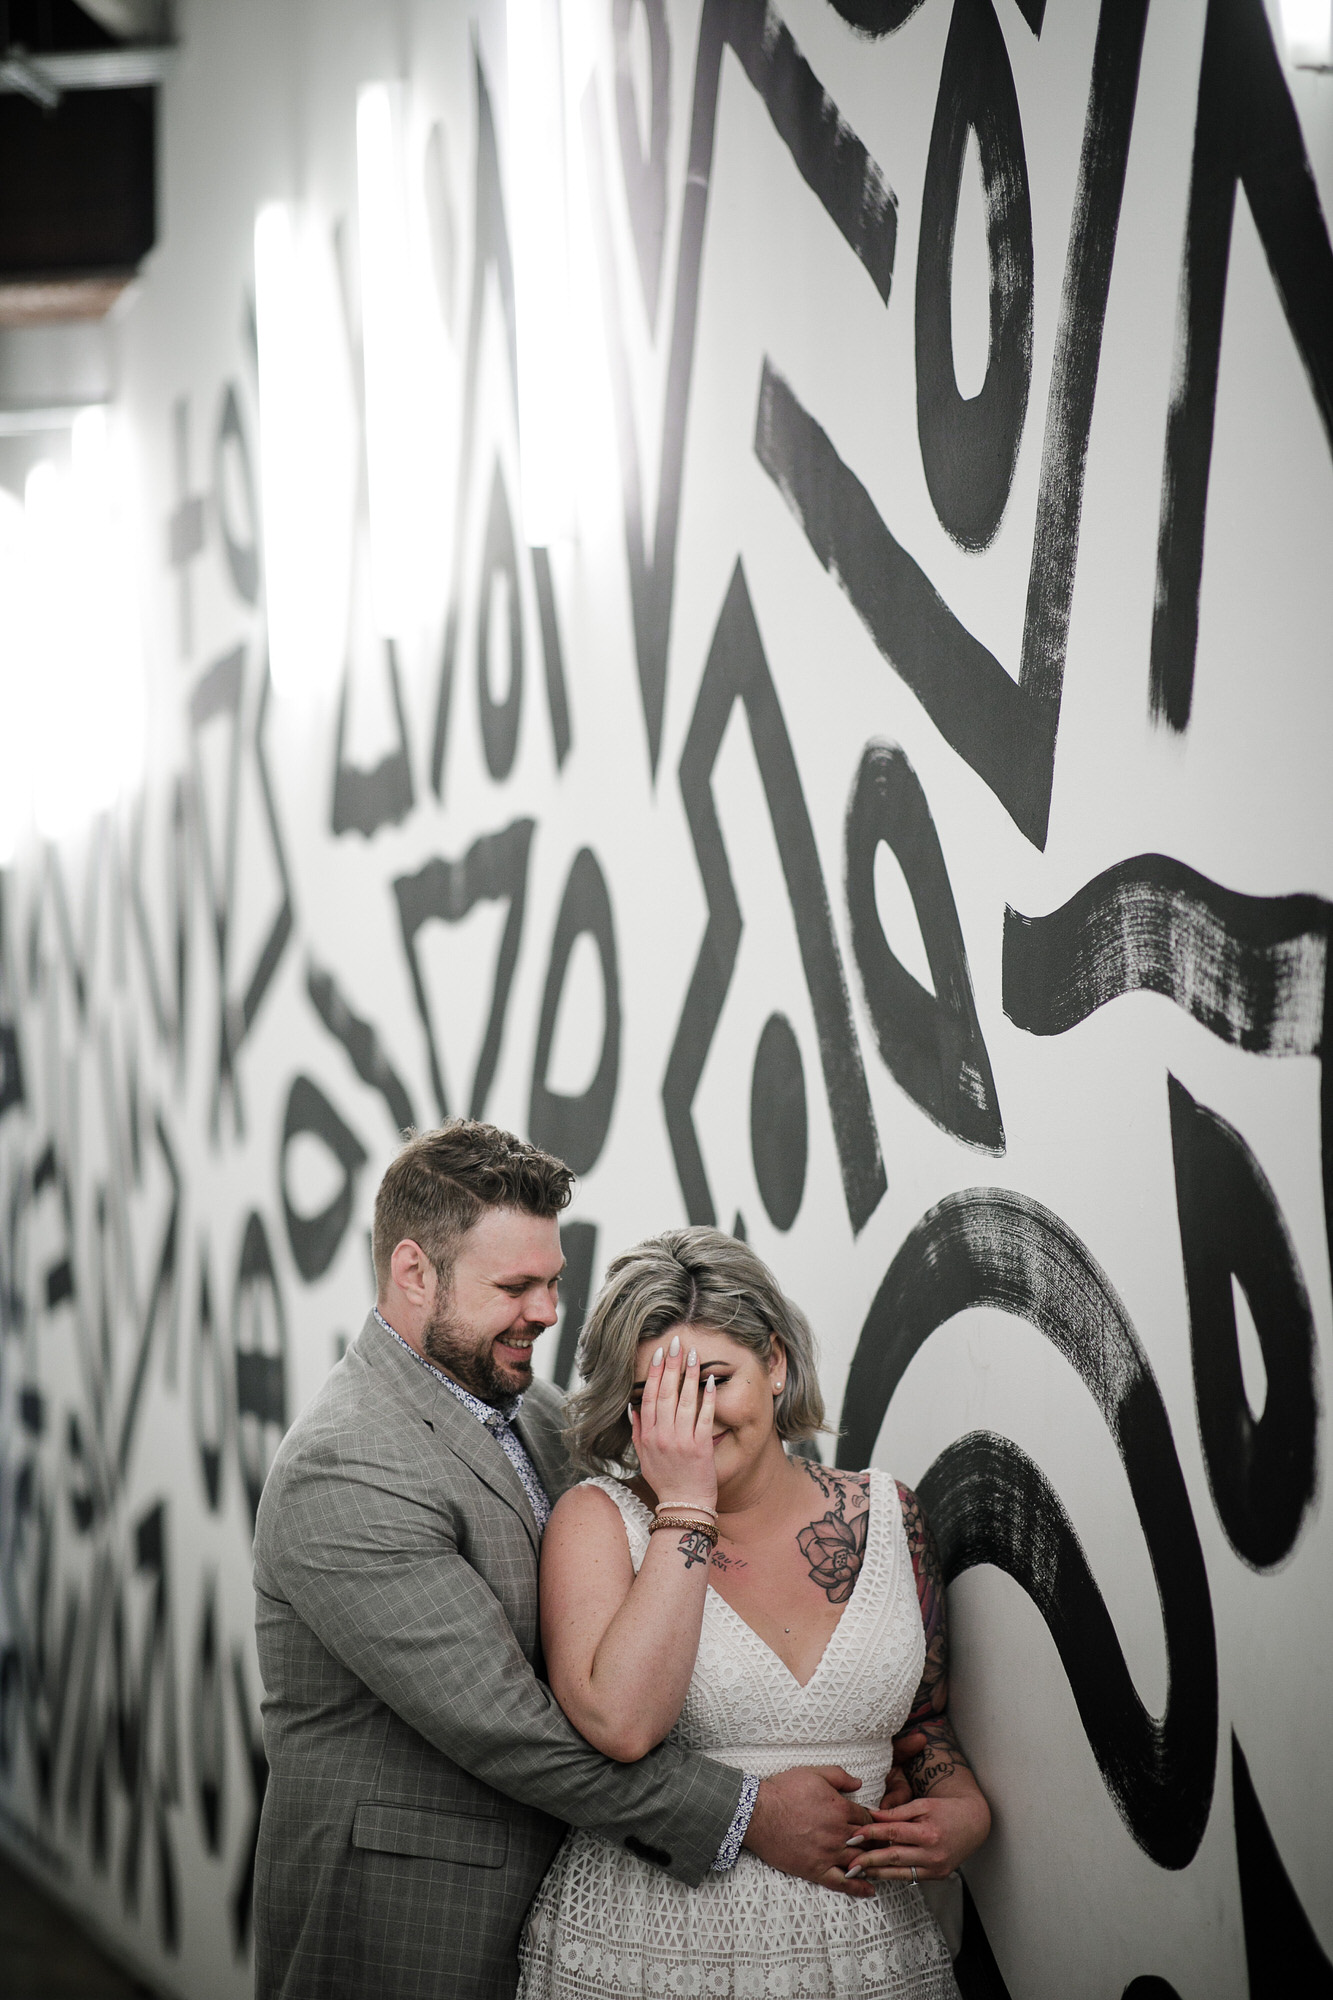 VIEW MORE - SARAH & CHRIS | MIAMI ELOPEMENT WITH PORTRAITS AT WYNWOOD WALLS, MIAMI FLORIDA